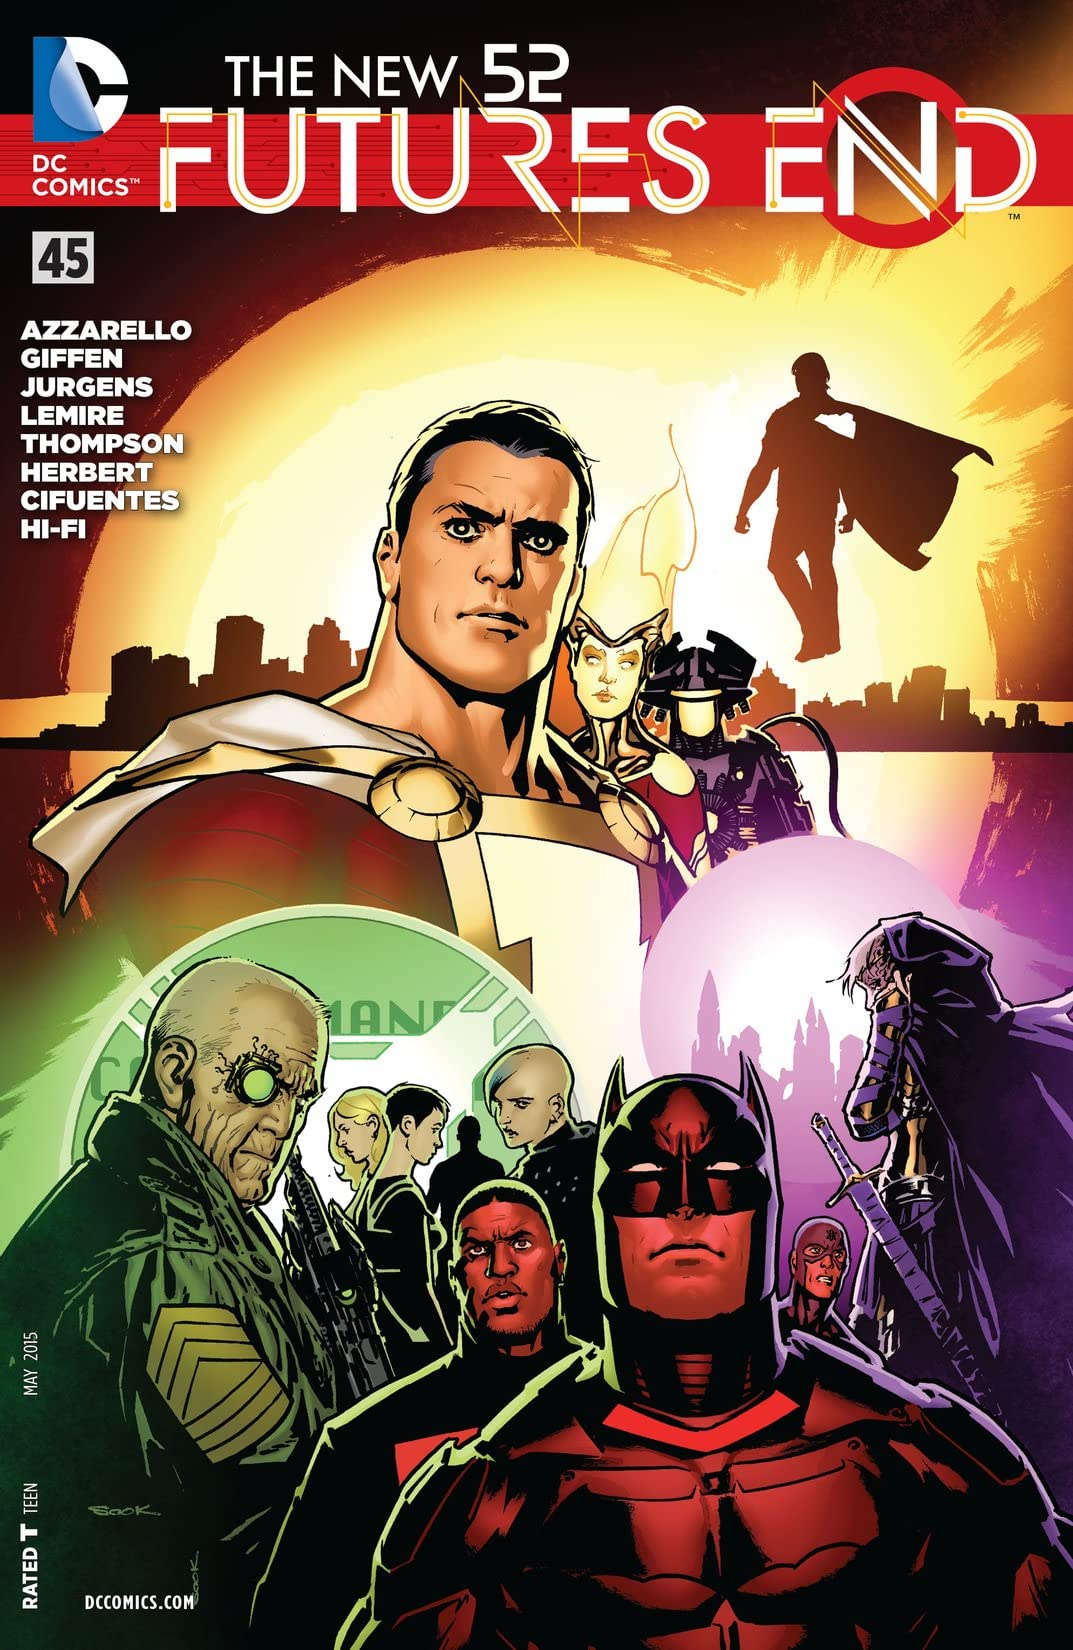 The New 52: Futures End #45